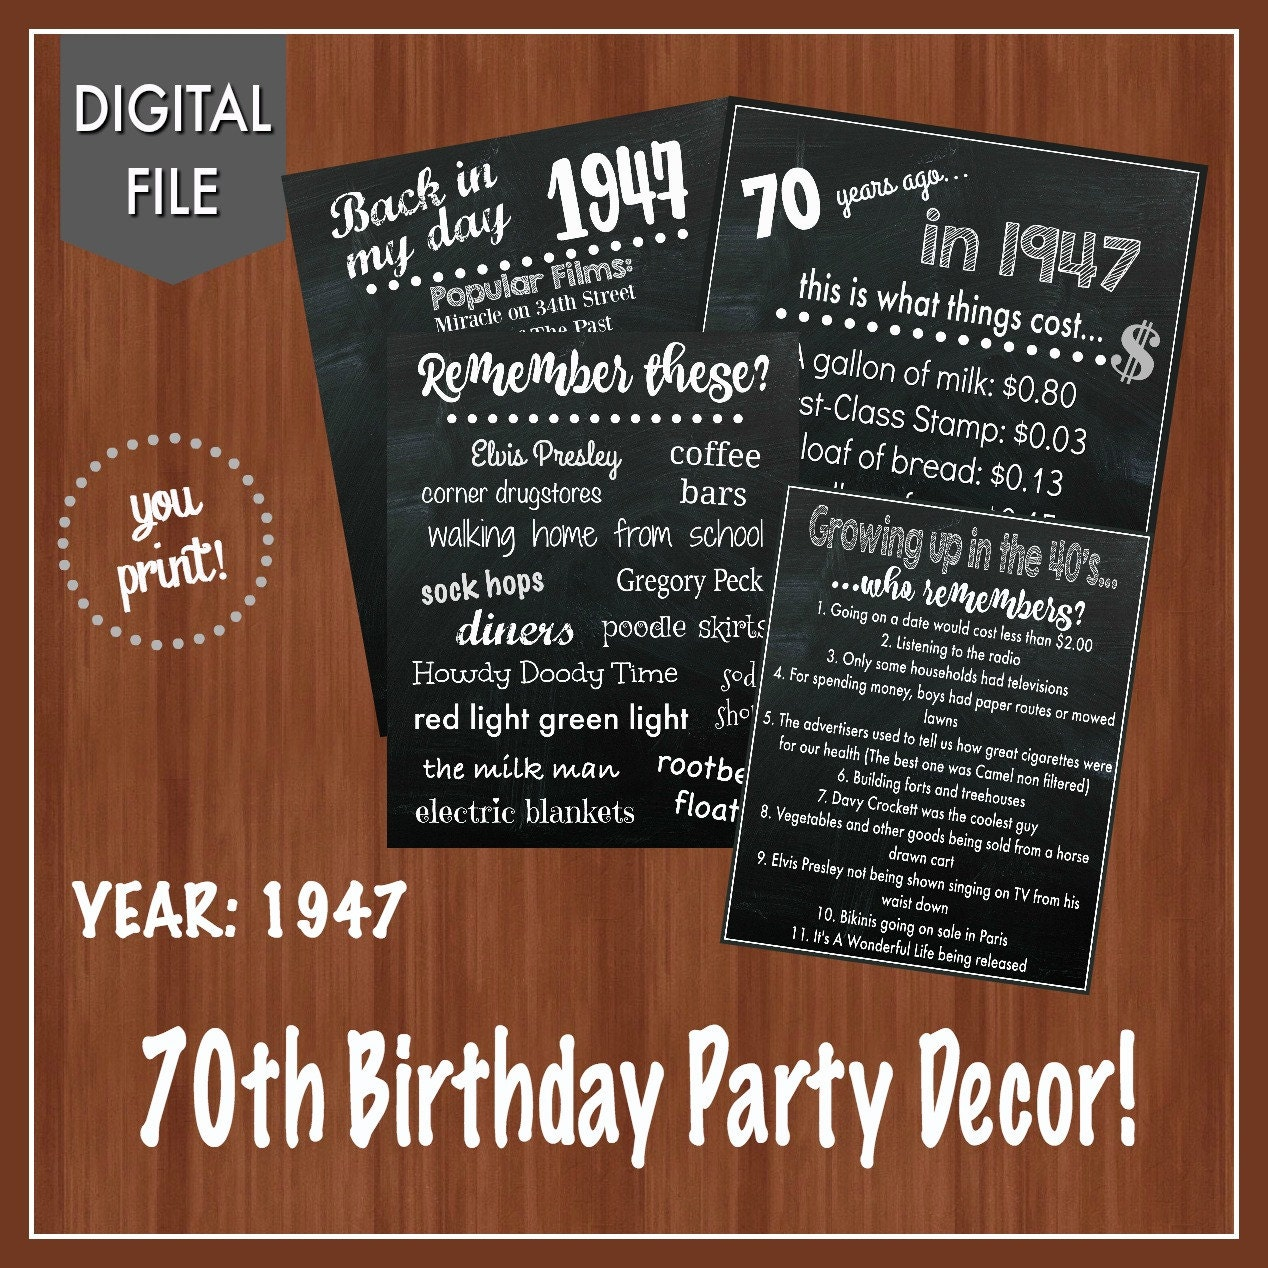 70th birthday party decor fun facts 40 39 s themed party for 70th birthday party decoration